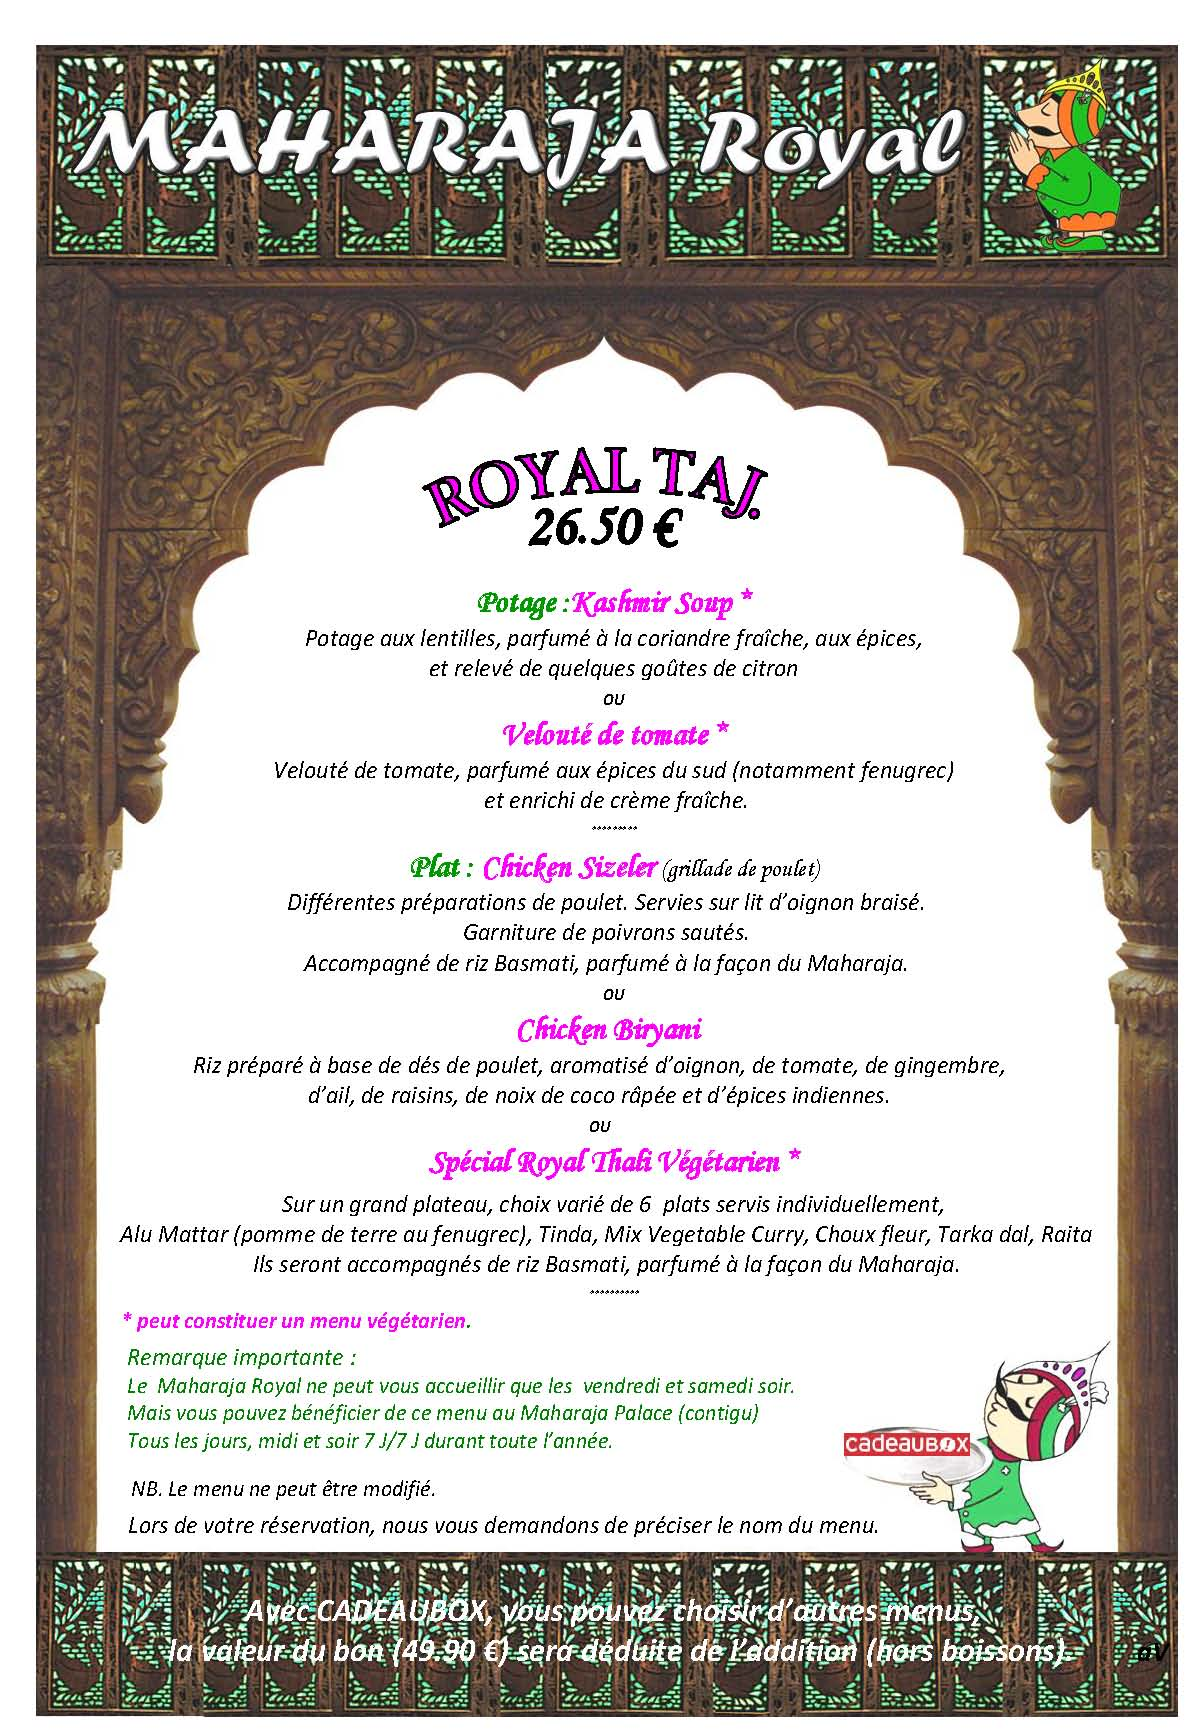 MENU ROYAL TAJ CADEAUBOX 2016 (1)